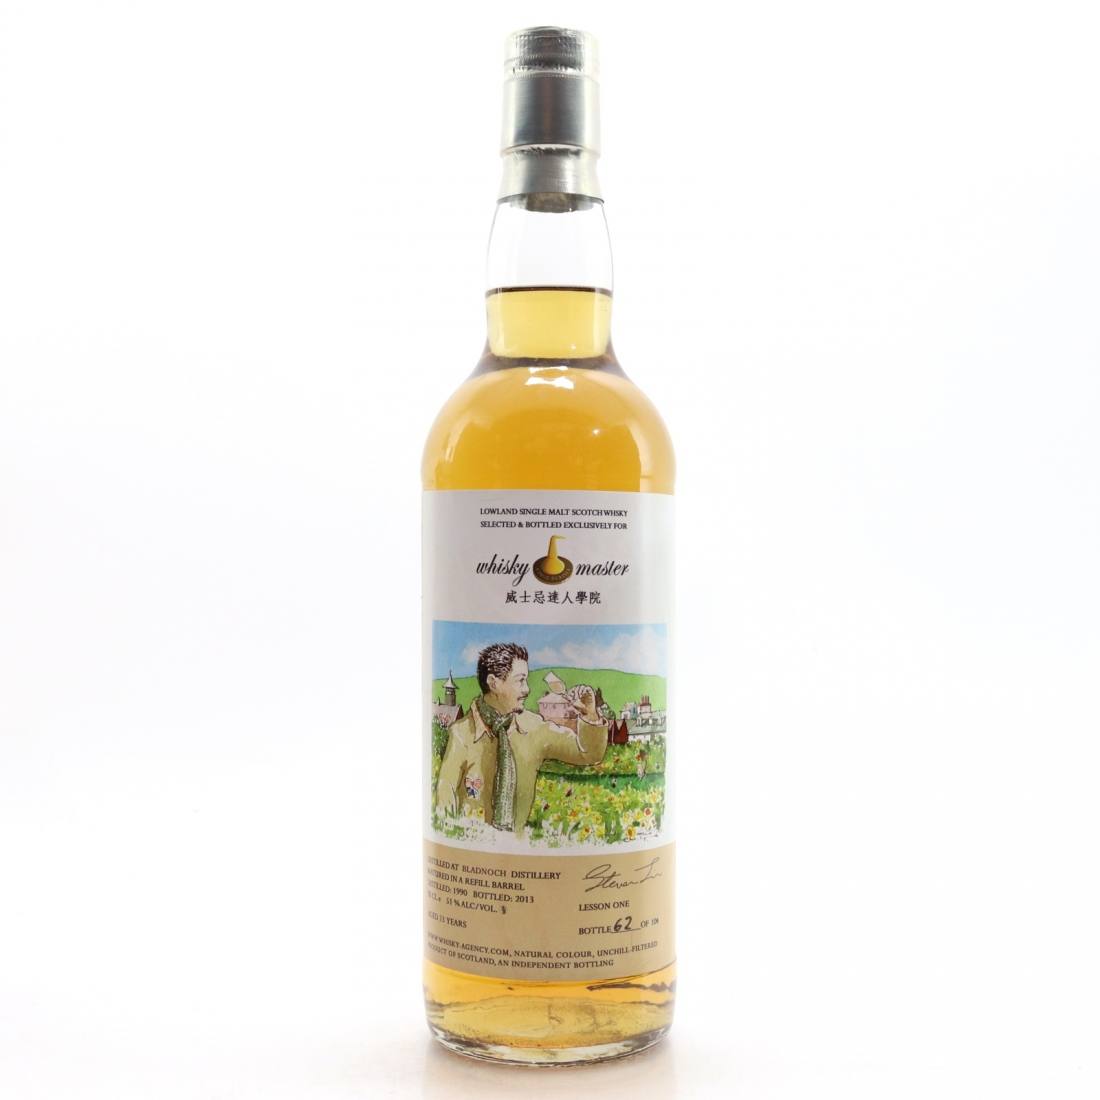 Bladnoch 1990 Whisky Agency 23 Year Old / Whisky Master